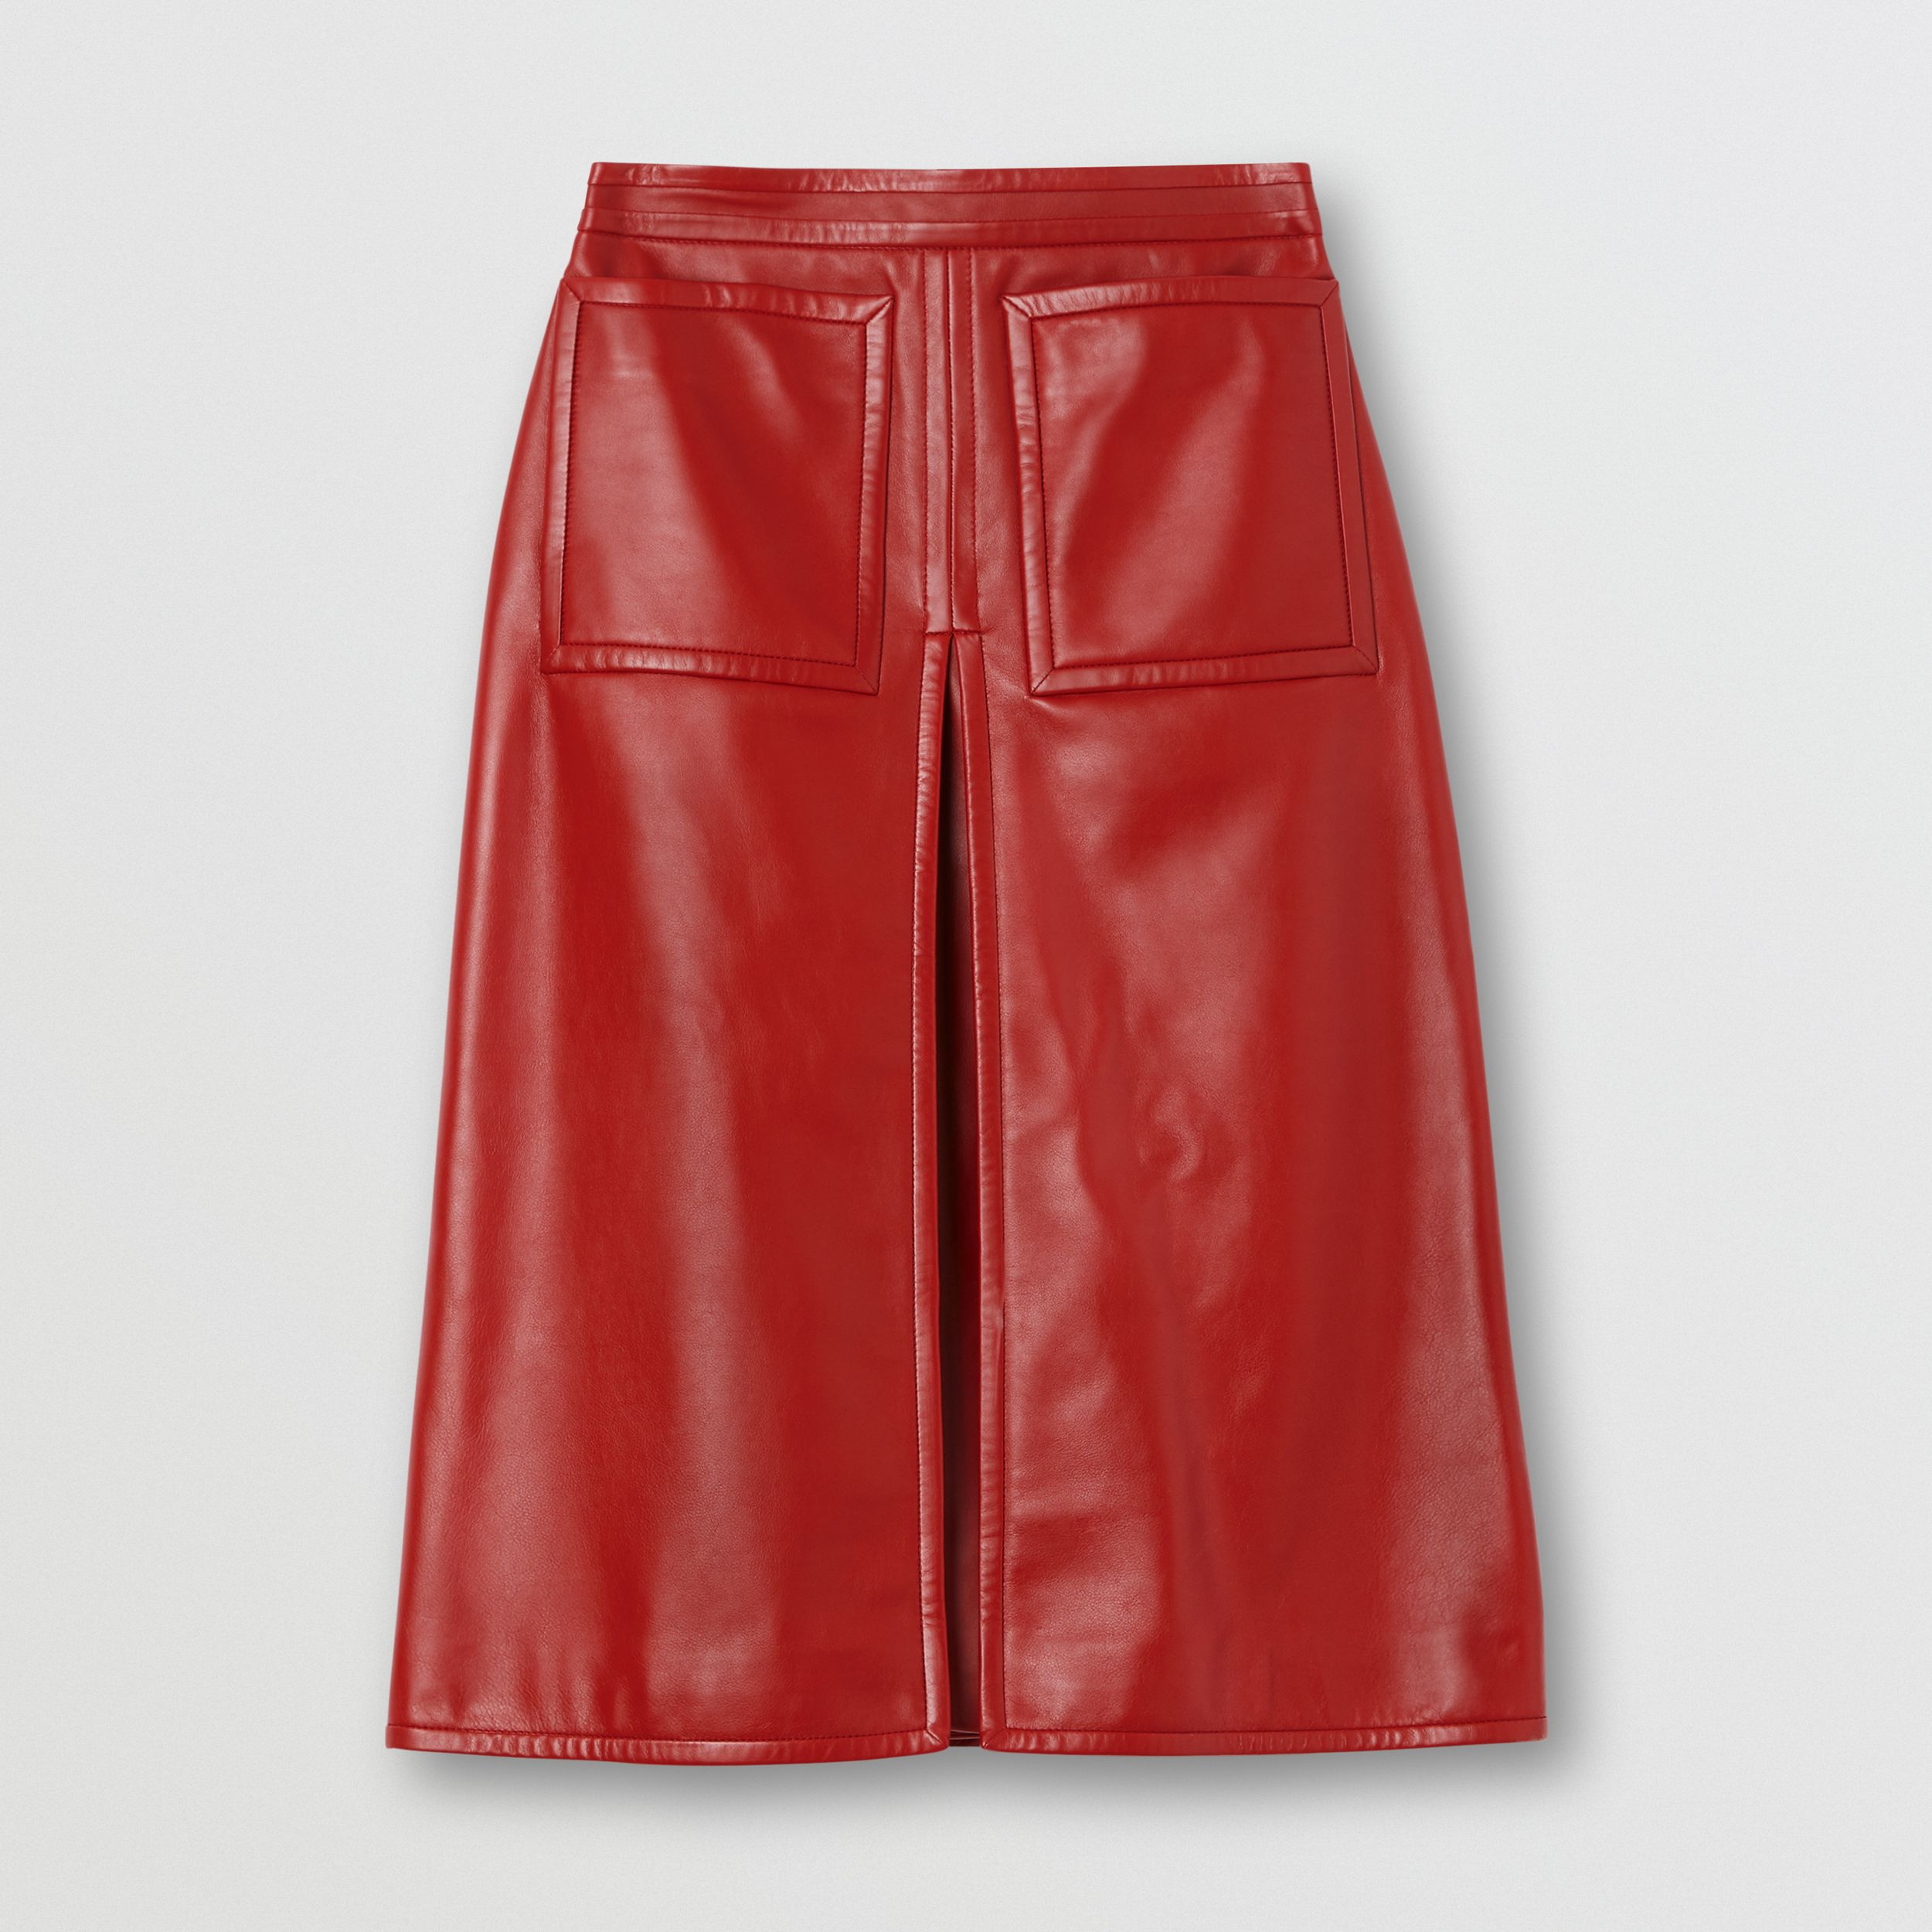 Box-pleat Detail Leather A-line Skirt in Dark Carmine - Women | Burberry Australia - 4